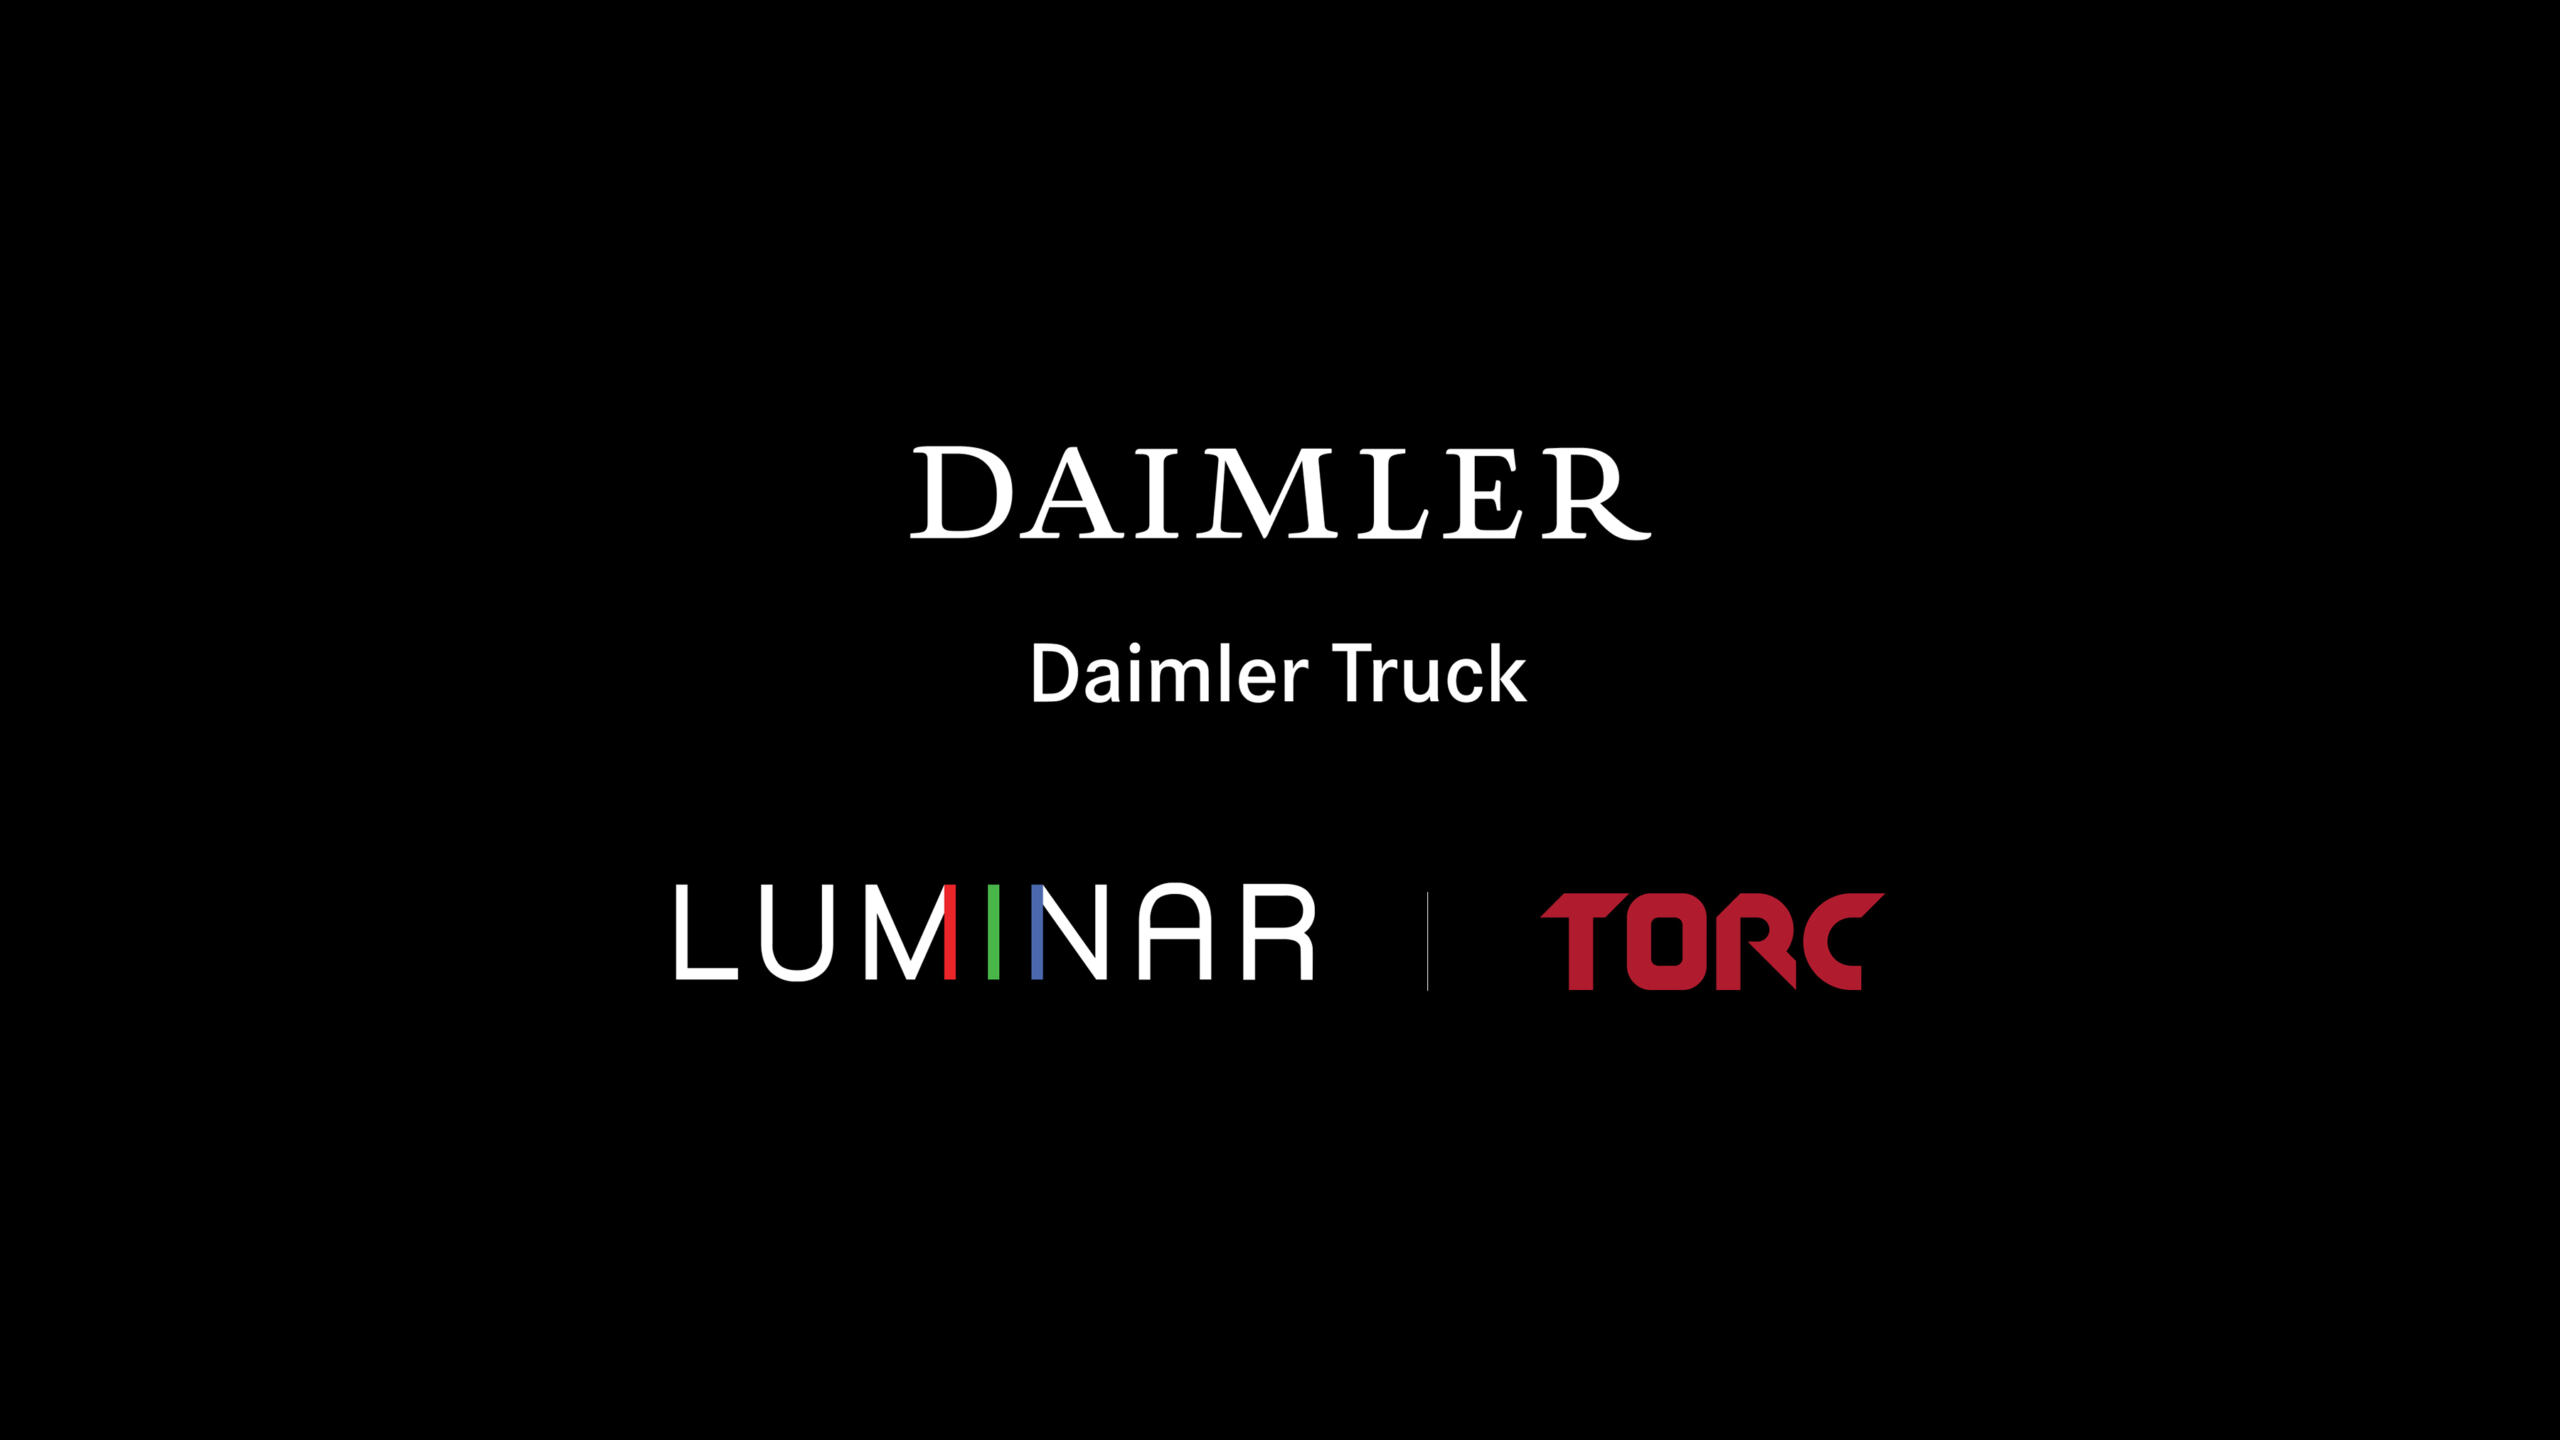 Daimler Trucks Luminar accordo